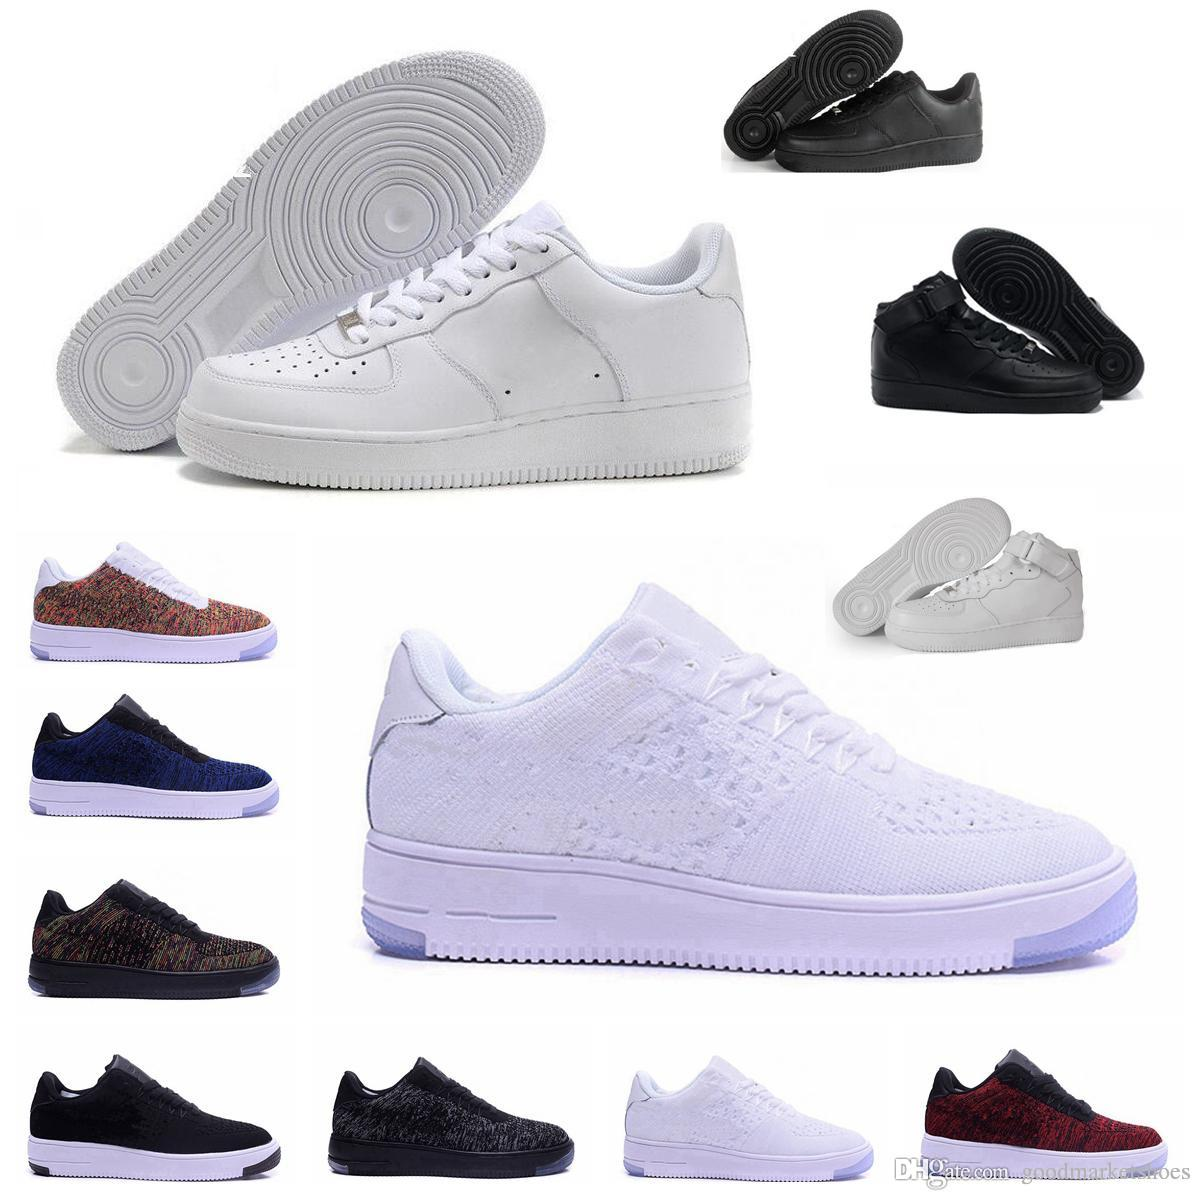 2018 Classical Shoes MID 07 One Men Women Running Shoes 1 Black White Sport Sneakers  Black Casual Skateboard Trainers Sneakers Size 36 46 Good Running Shoes ... 31a4f75413